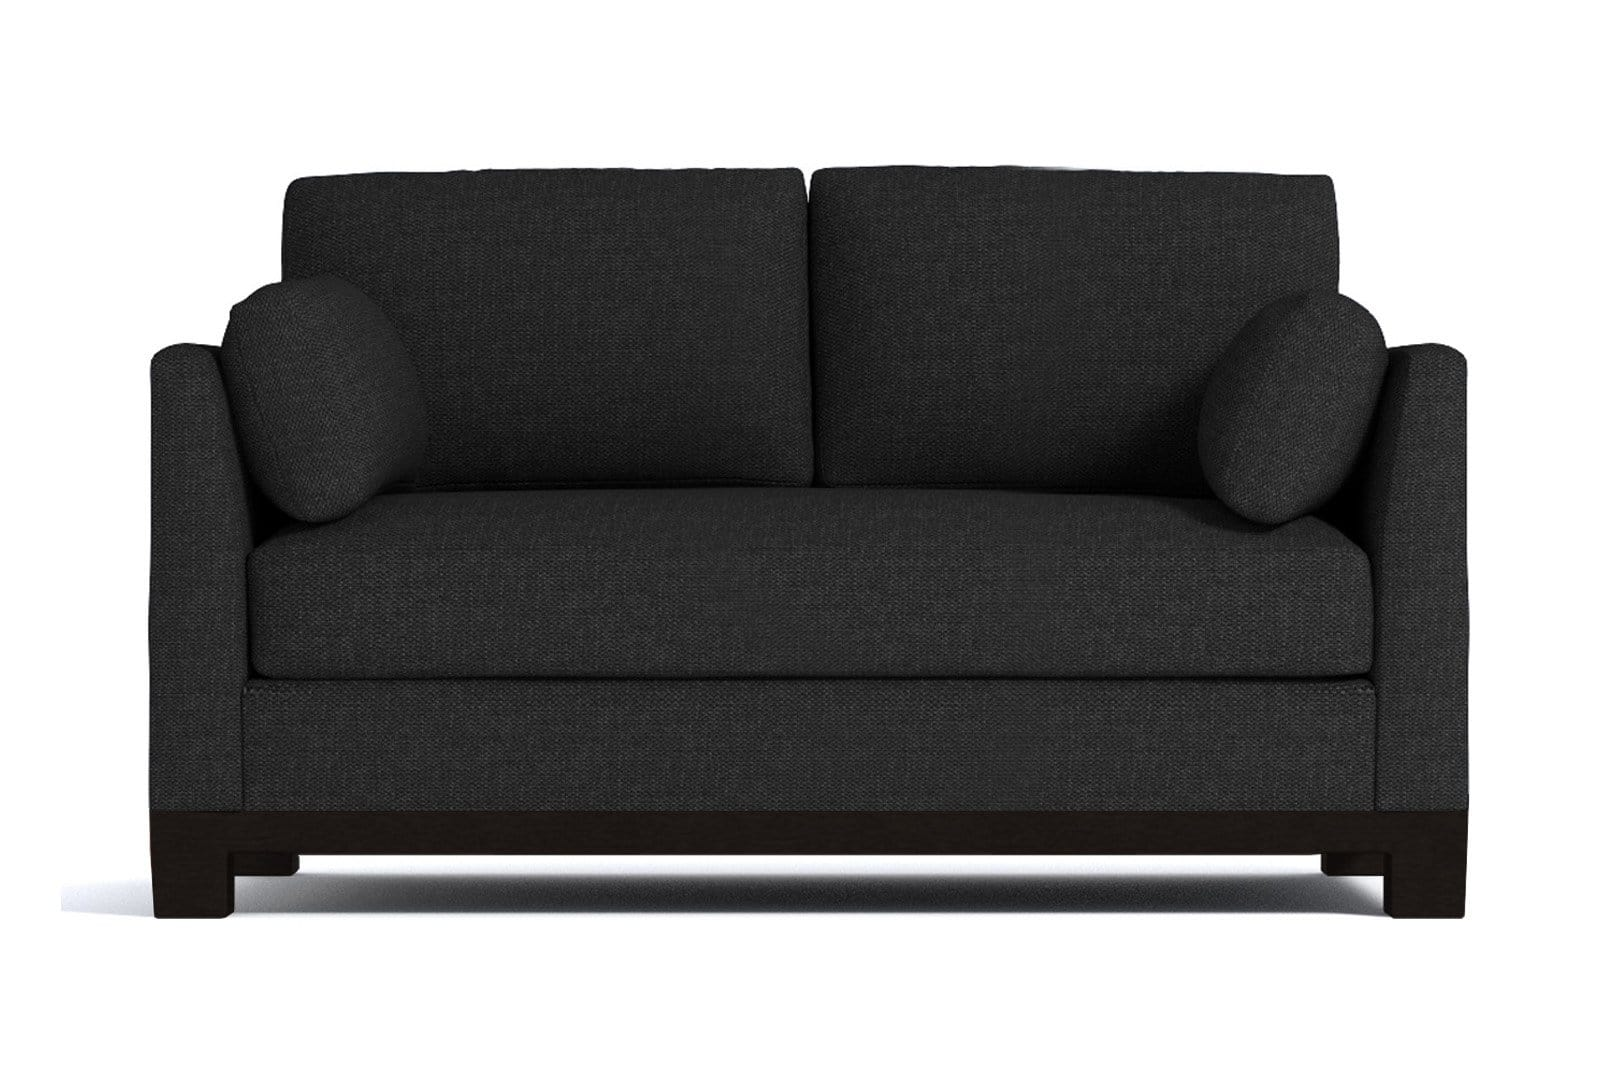 Avalon Apartment Size Sleeper Sofa - Dark Grey - Pull Out Couch Bed Made in the USA - Sold by...